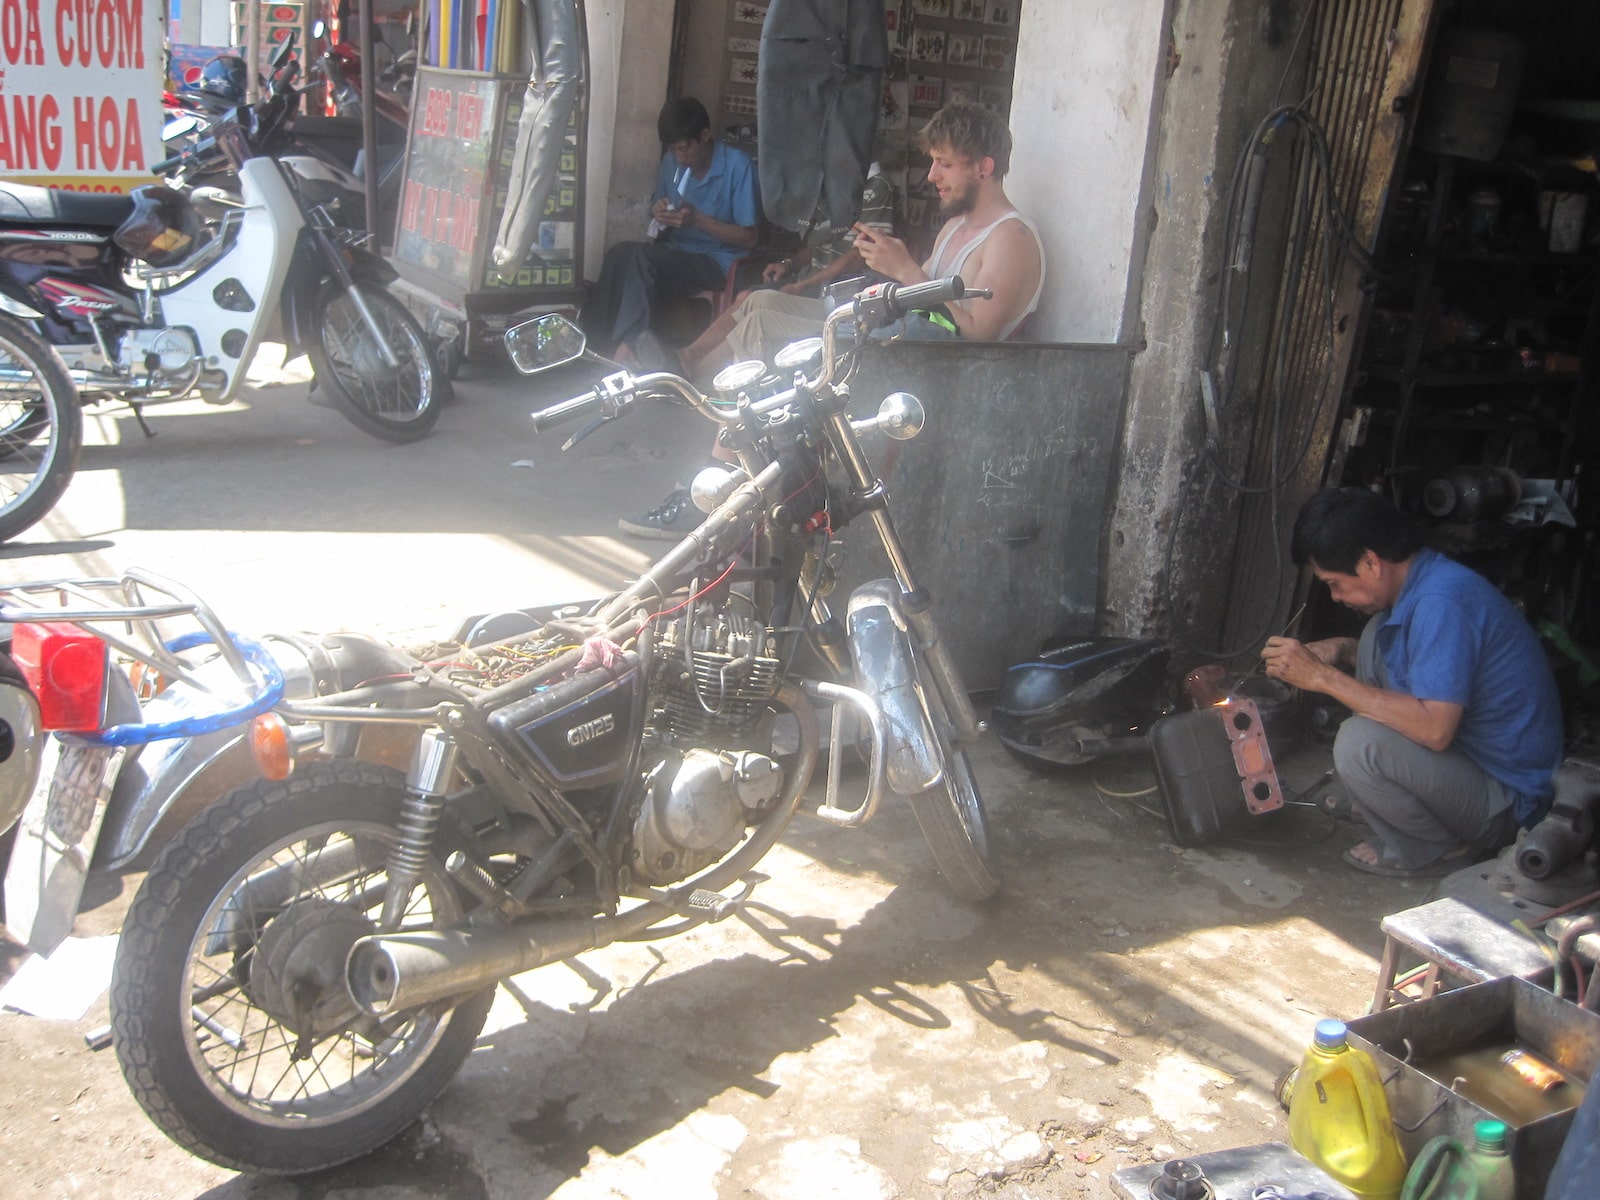 Image of a motorbike and man working on other repairs